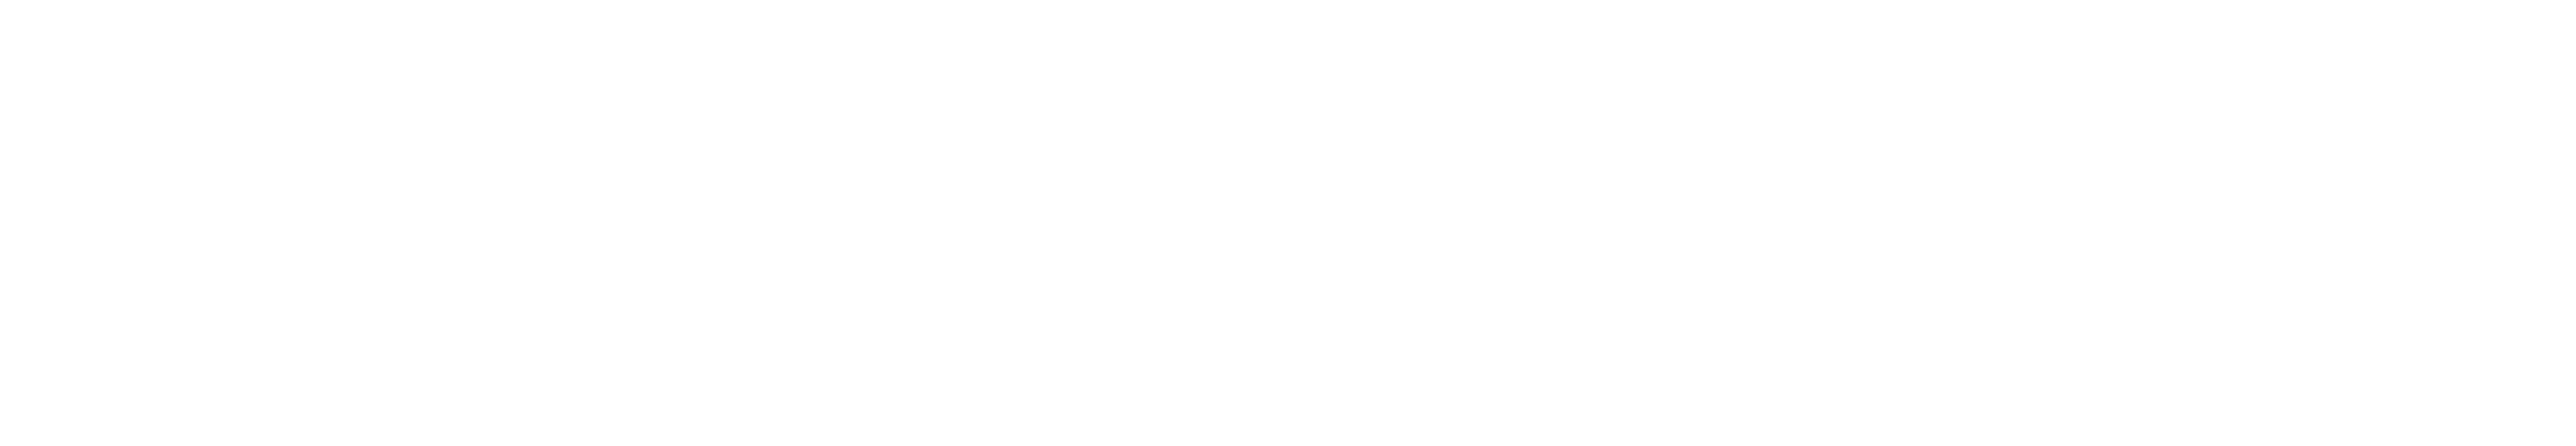 Fanquip Ventilation Solutions